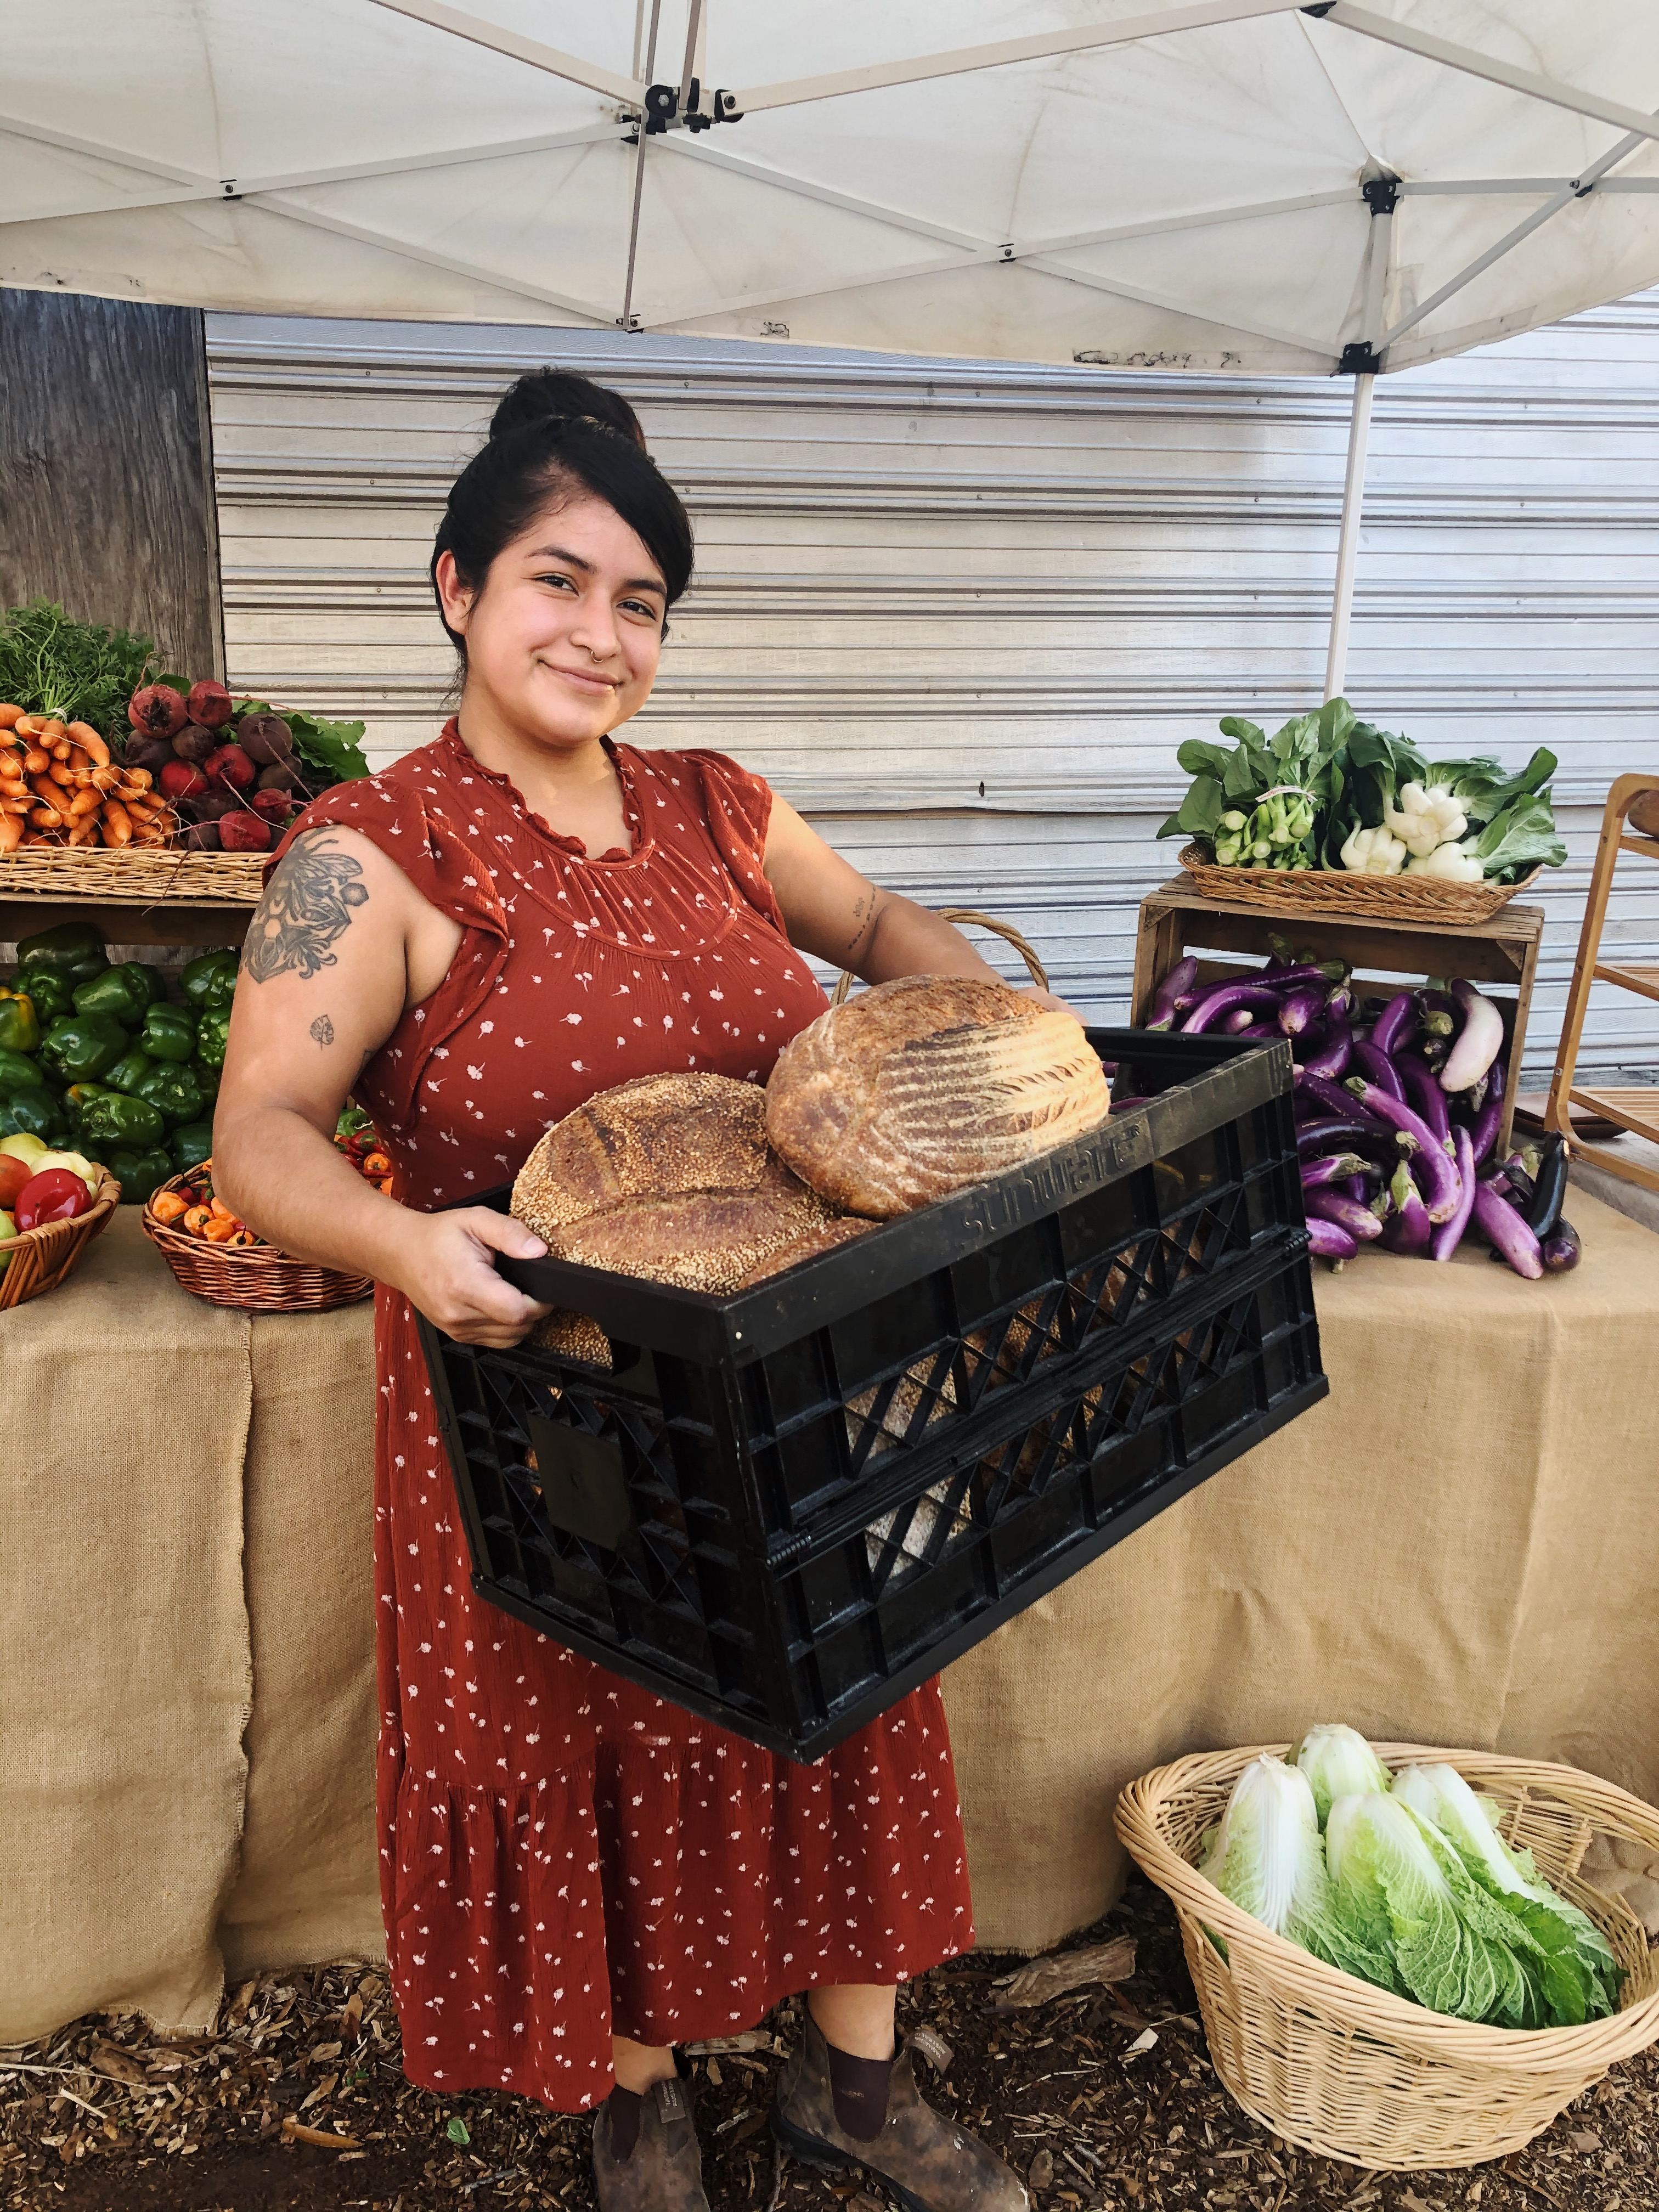 A photo of baker Betsy Gonzalez of Osono Bread whole a milk carton of freshly baked loaves of bread at the farmers market